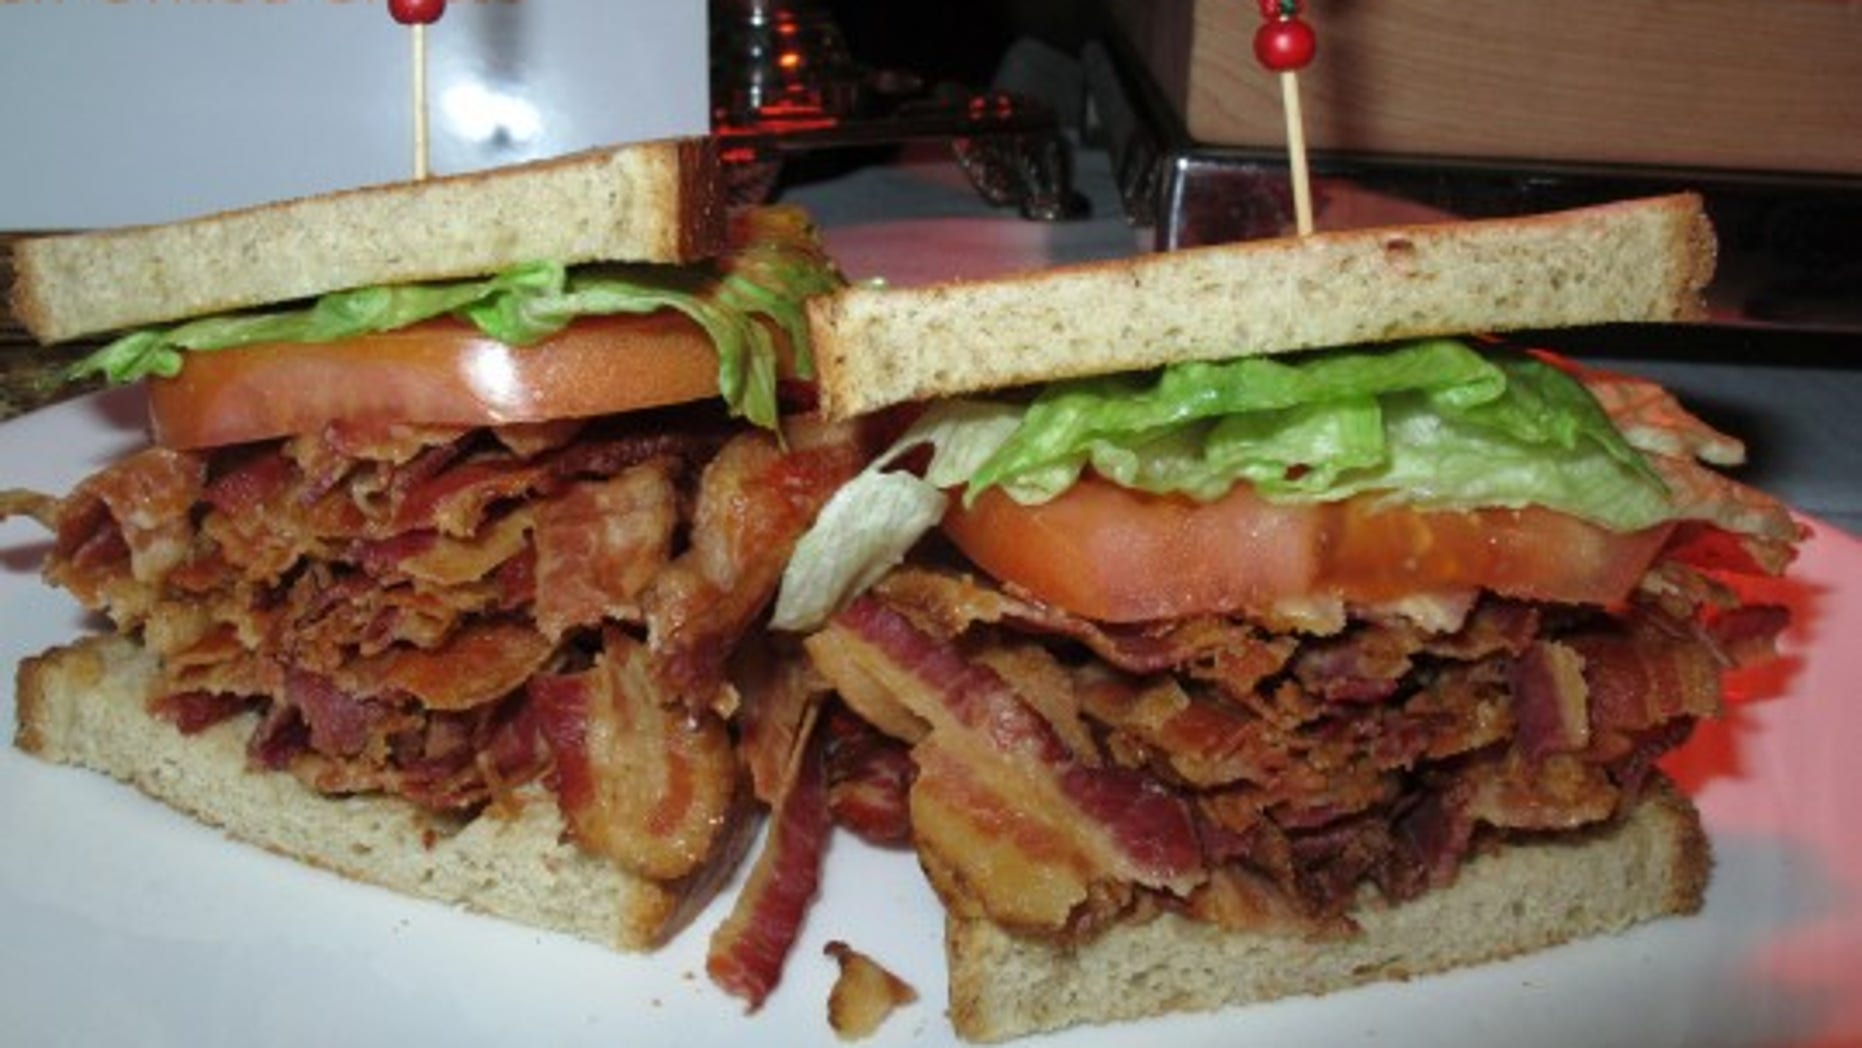 A bacon-lettuce-and-tomato sandwich made with an entire pound of bacon.